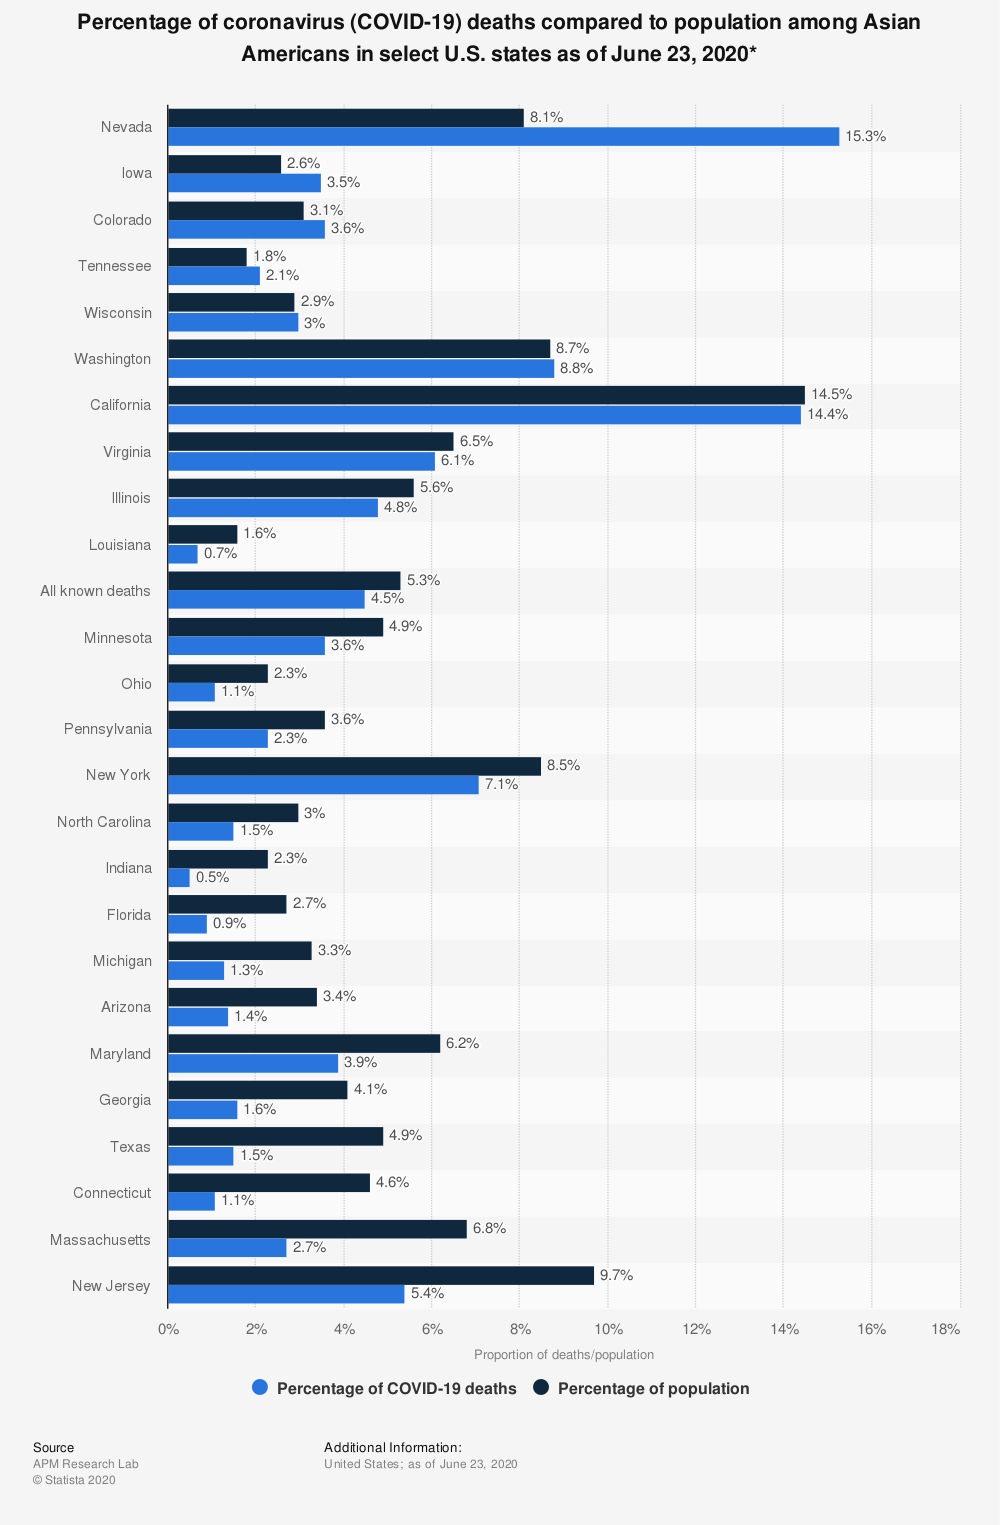 Statistic: Percentage of coronavirus (COVID-19) deaths compared to population among Asian Americans in select U.S. states as of June 23, 2020* | Statista